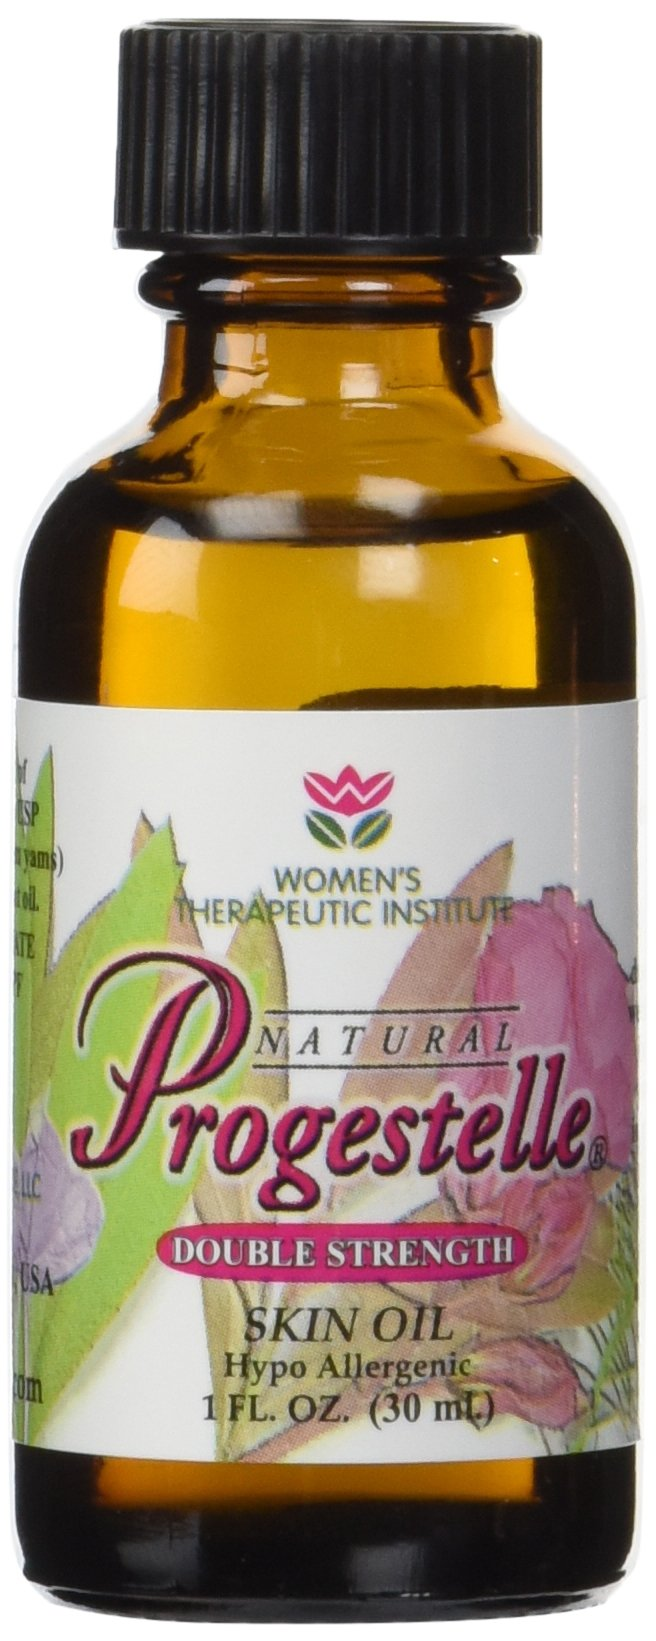 2 Bottles of Progestelle Progesterone Oil Purer Than Progesterone Cream, Bioidentical, Natural, Topical - NO Preservatives, NO Fragrance, NO Emulsifiers and Booklet- 1oz 800 mg/oz Double Strength